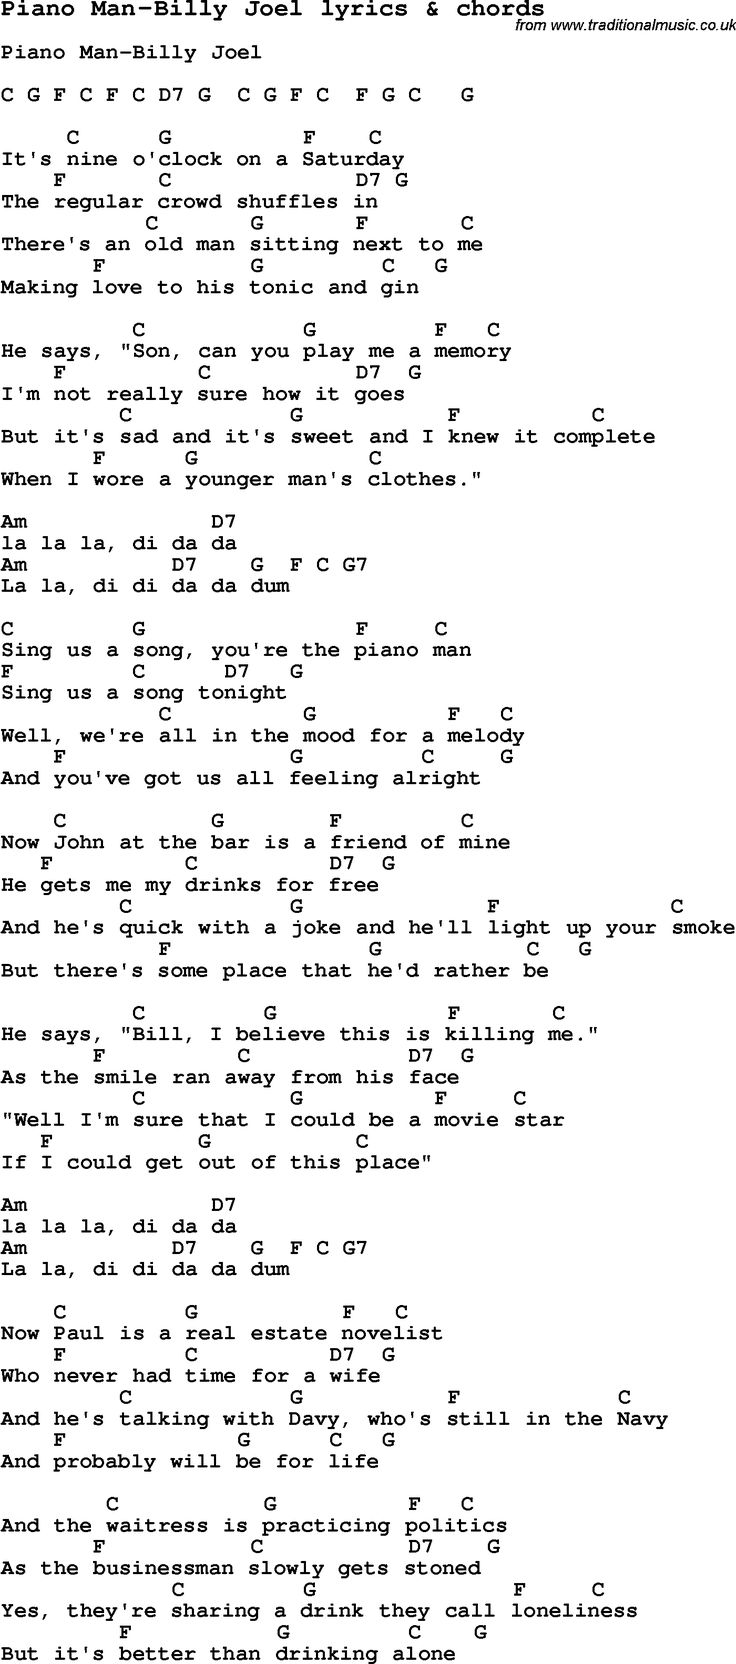 Best 25 guitar chords songs ideas on pinterest guitar chords love song lyrics for piano man billy joel with chords for ukulele guitar hexwebz Image collections